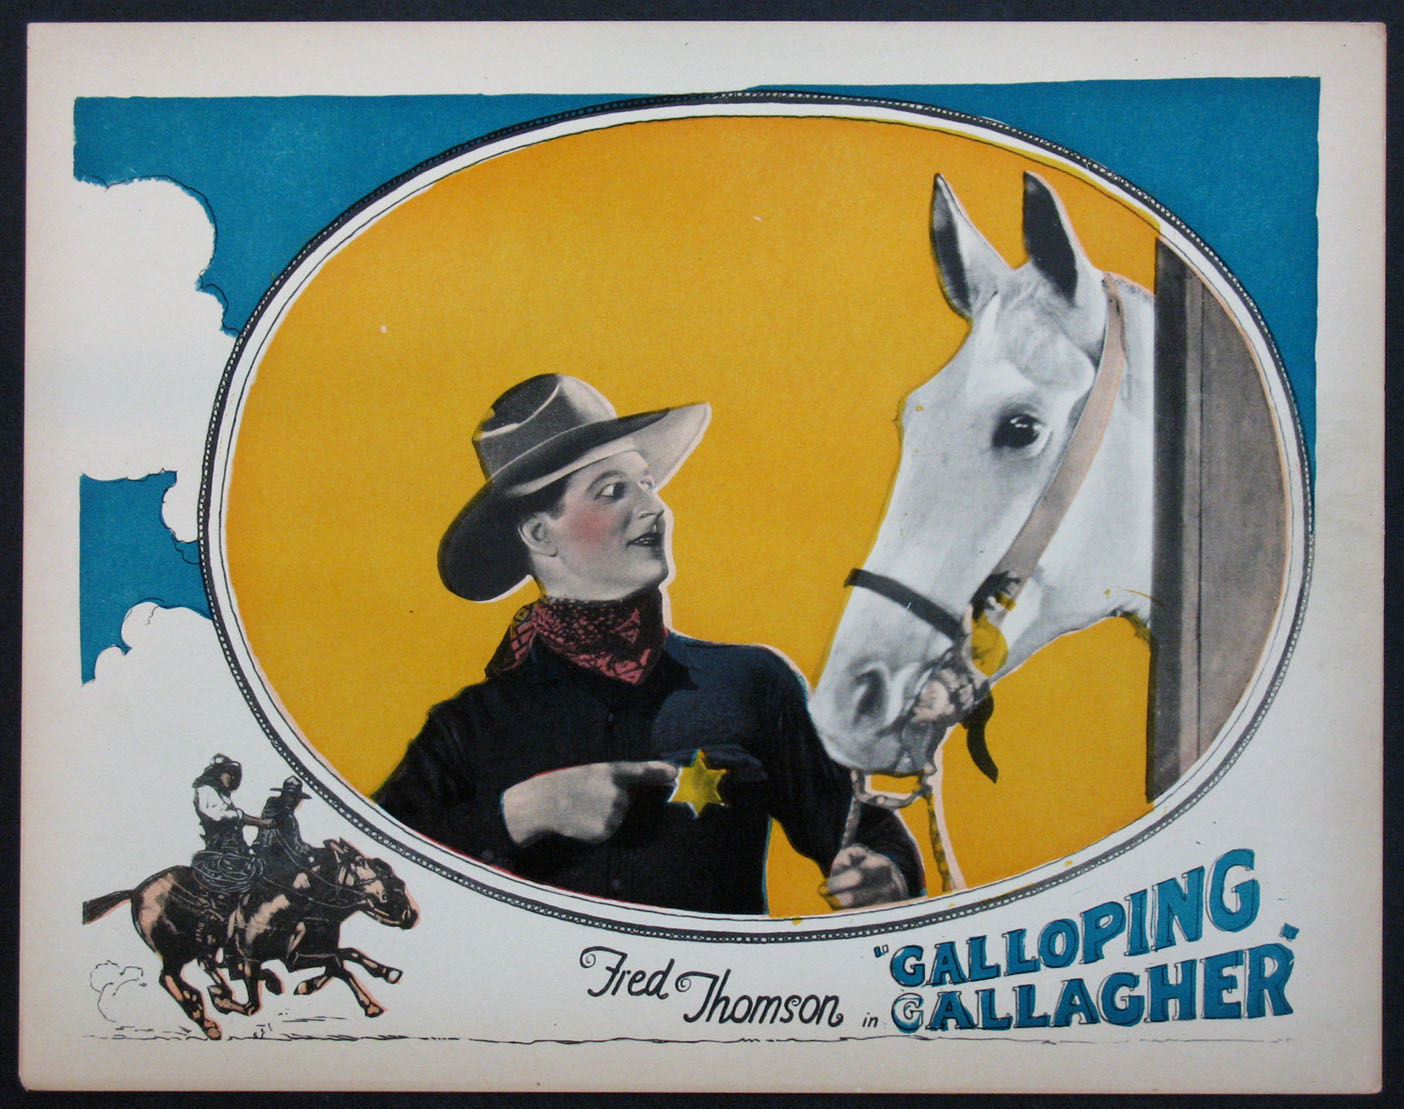 GALLOPING GALLAGHER @ FilmPosters.com